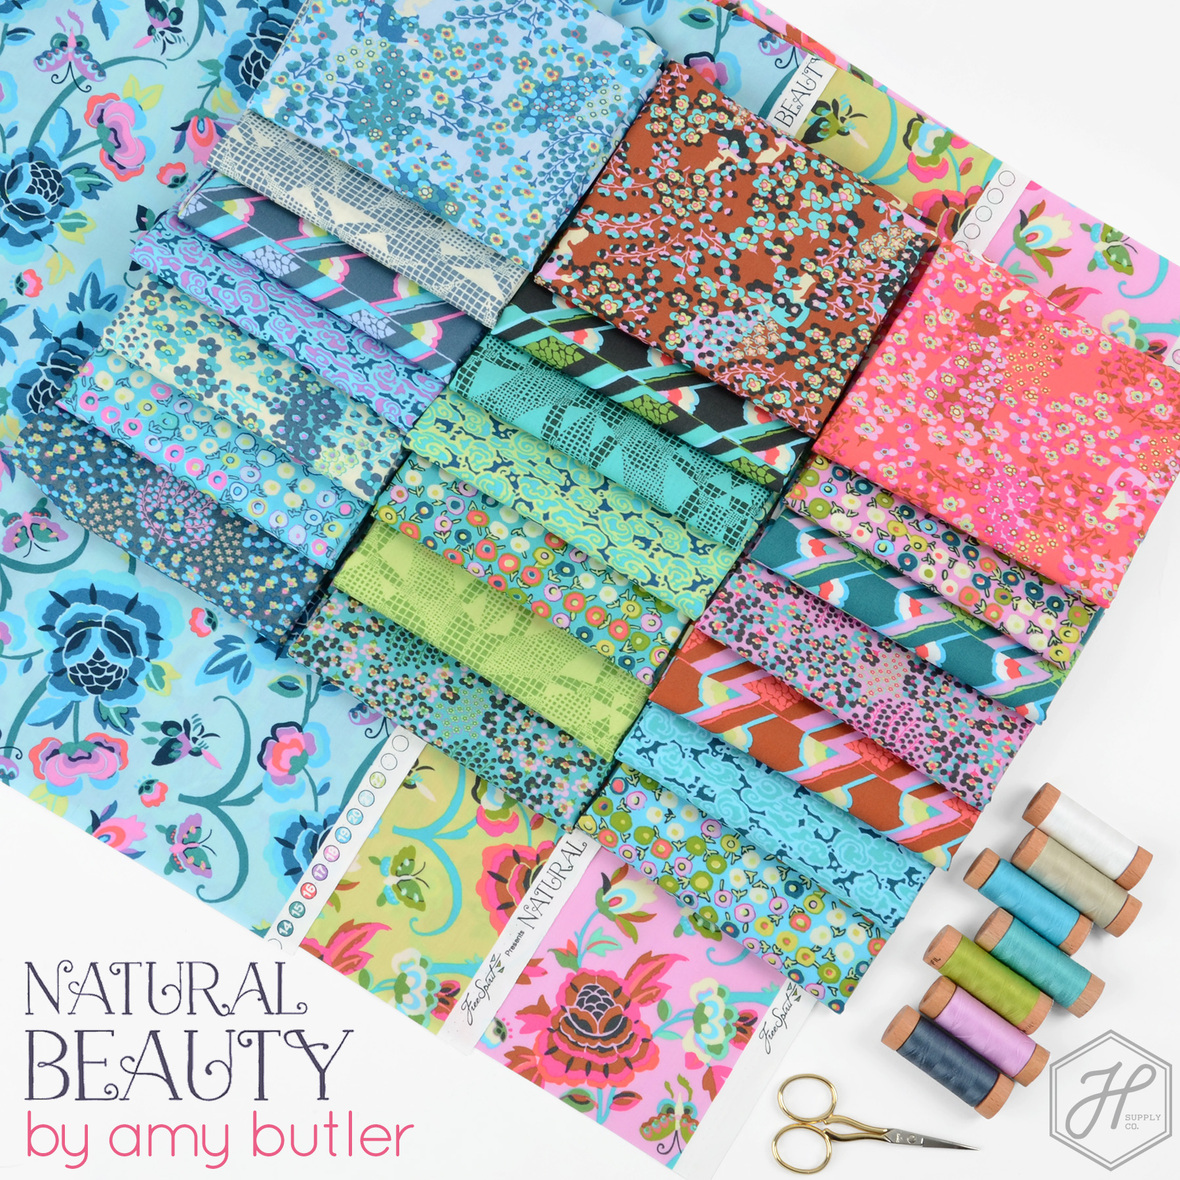 Natural Beauty fabric poster Amy Butler at Hawthorne Supply Co